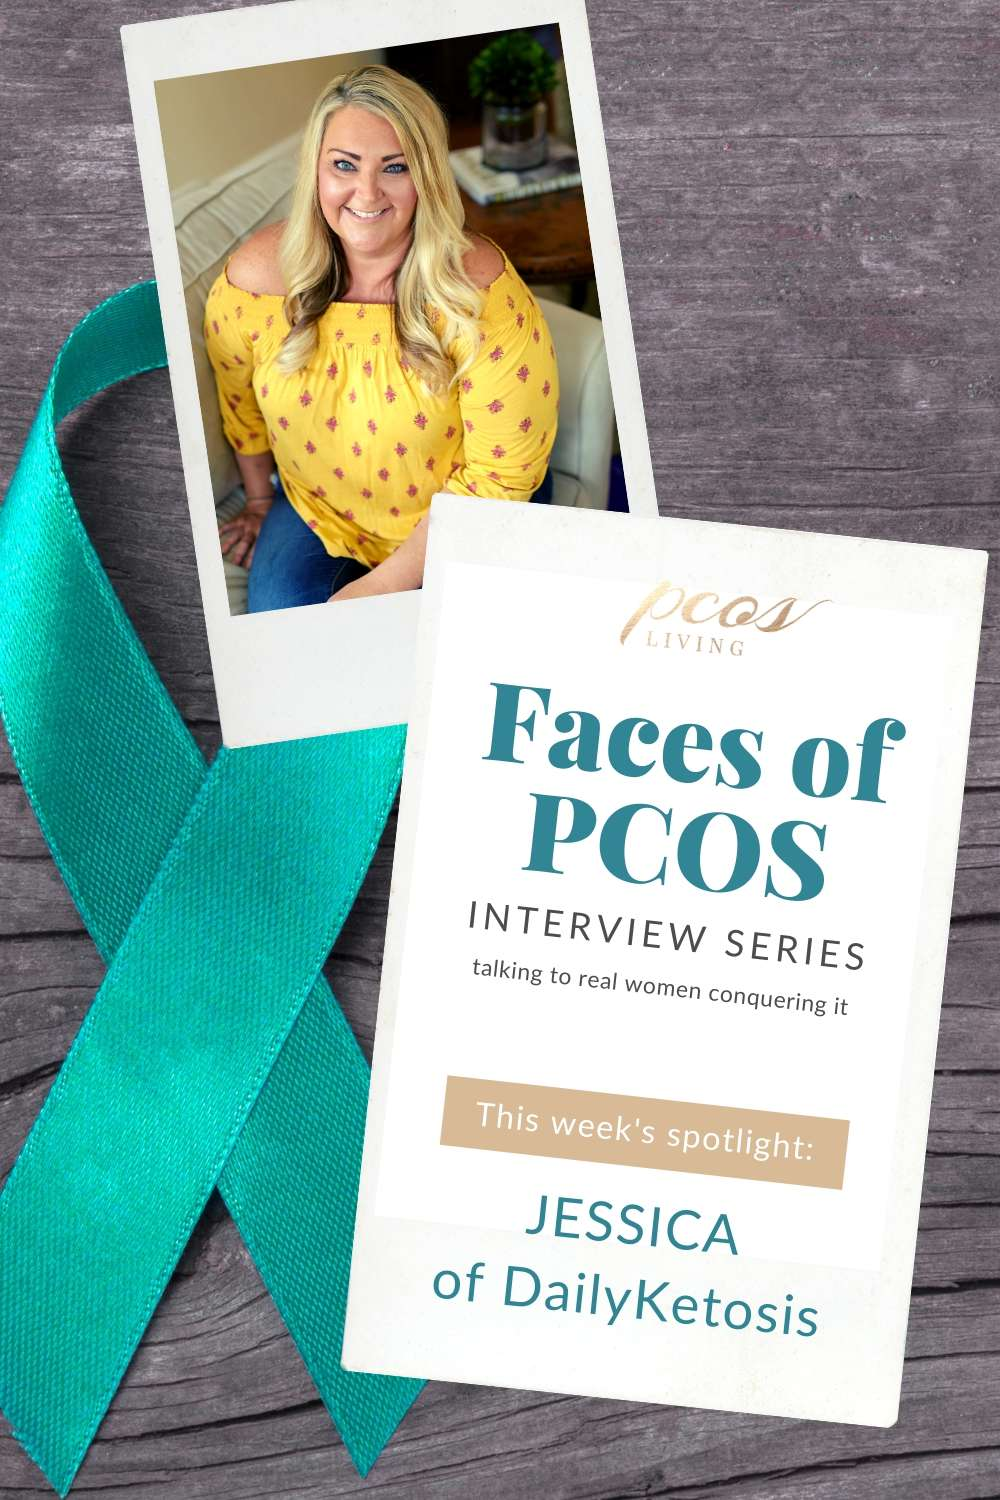 PCOS Living Faces of PCOS Interview Series: Jessica Dukes, she talks about how she is beating PCOS. Read her tips and advice.  PCOSLiving.com  #pcos #hormones #womenshealth